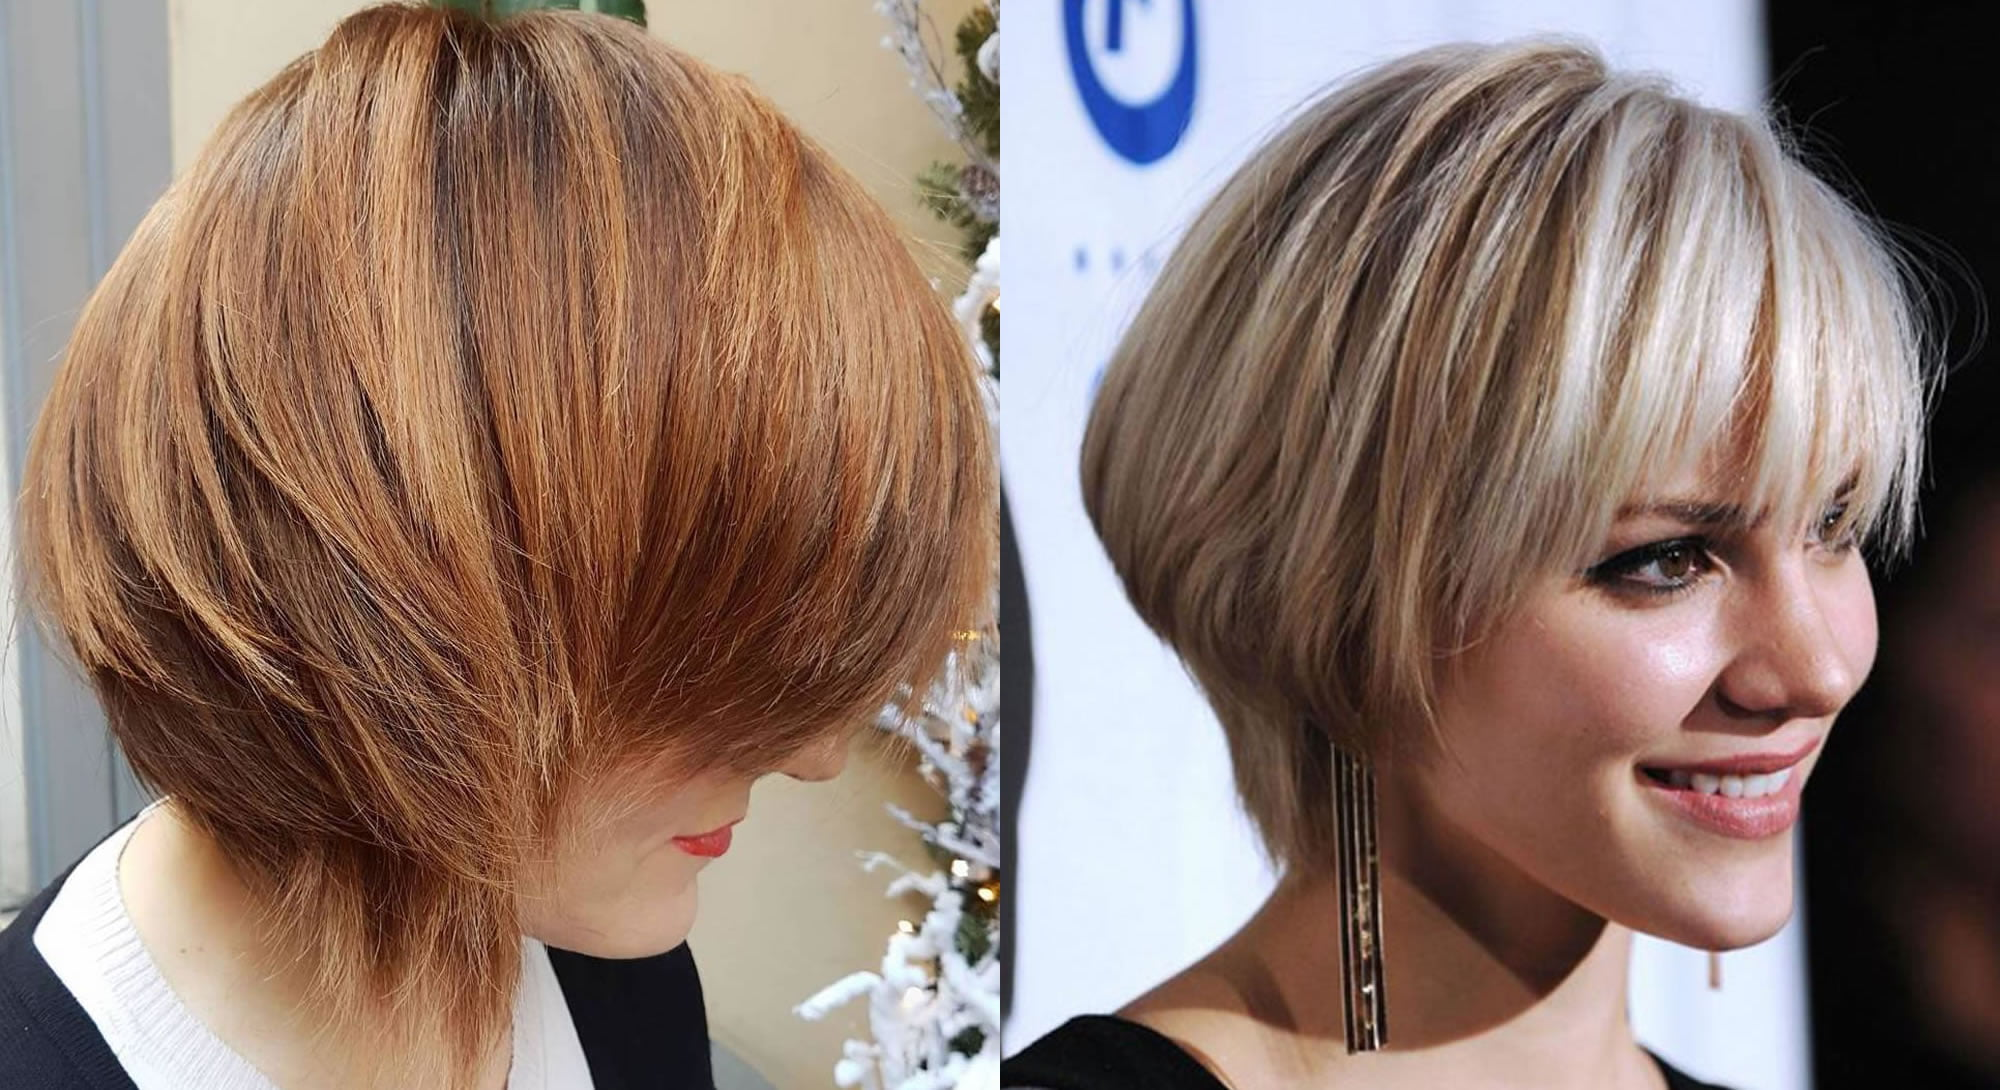 8 Hairstyles: 33 Ravishing Short Bob Hair Cuts With Bangs & New Hair